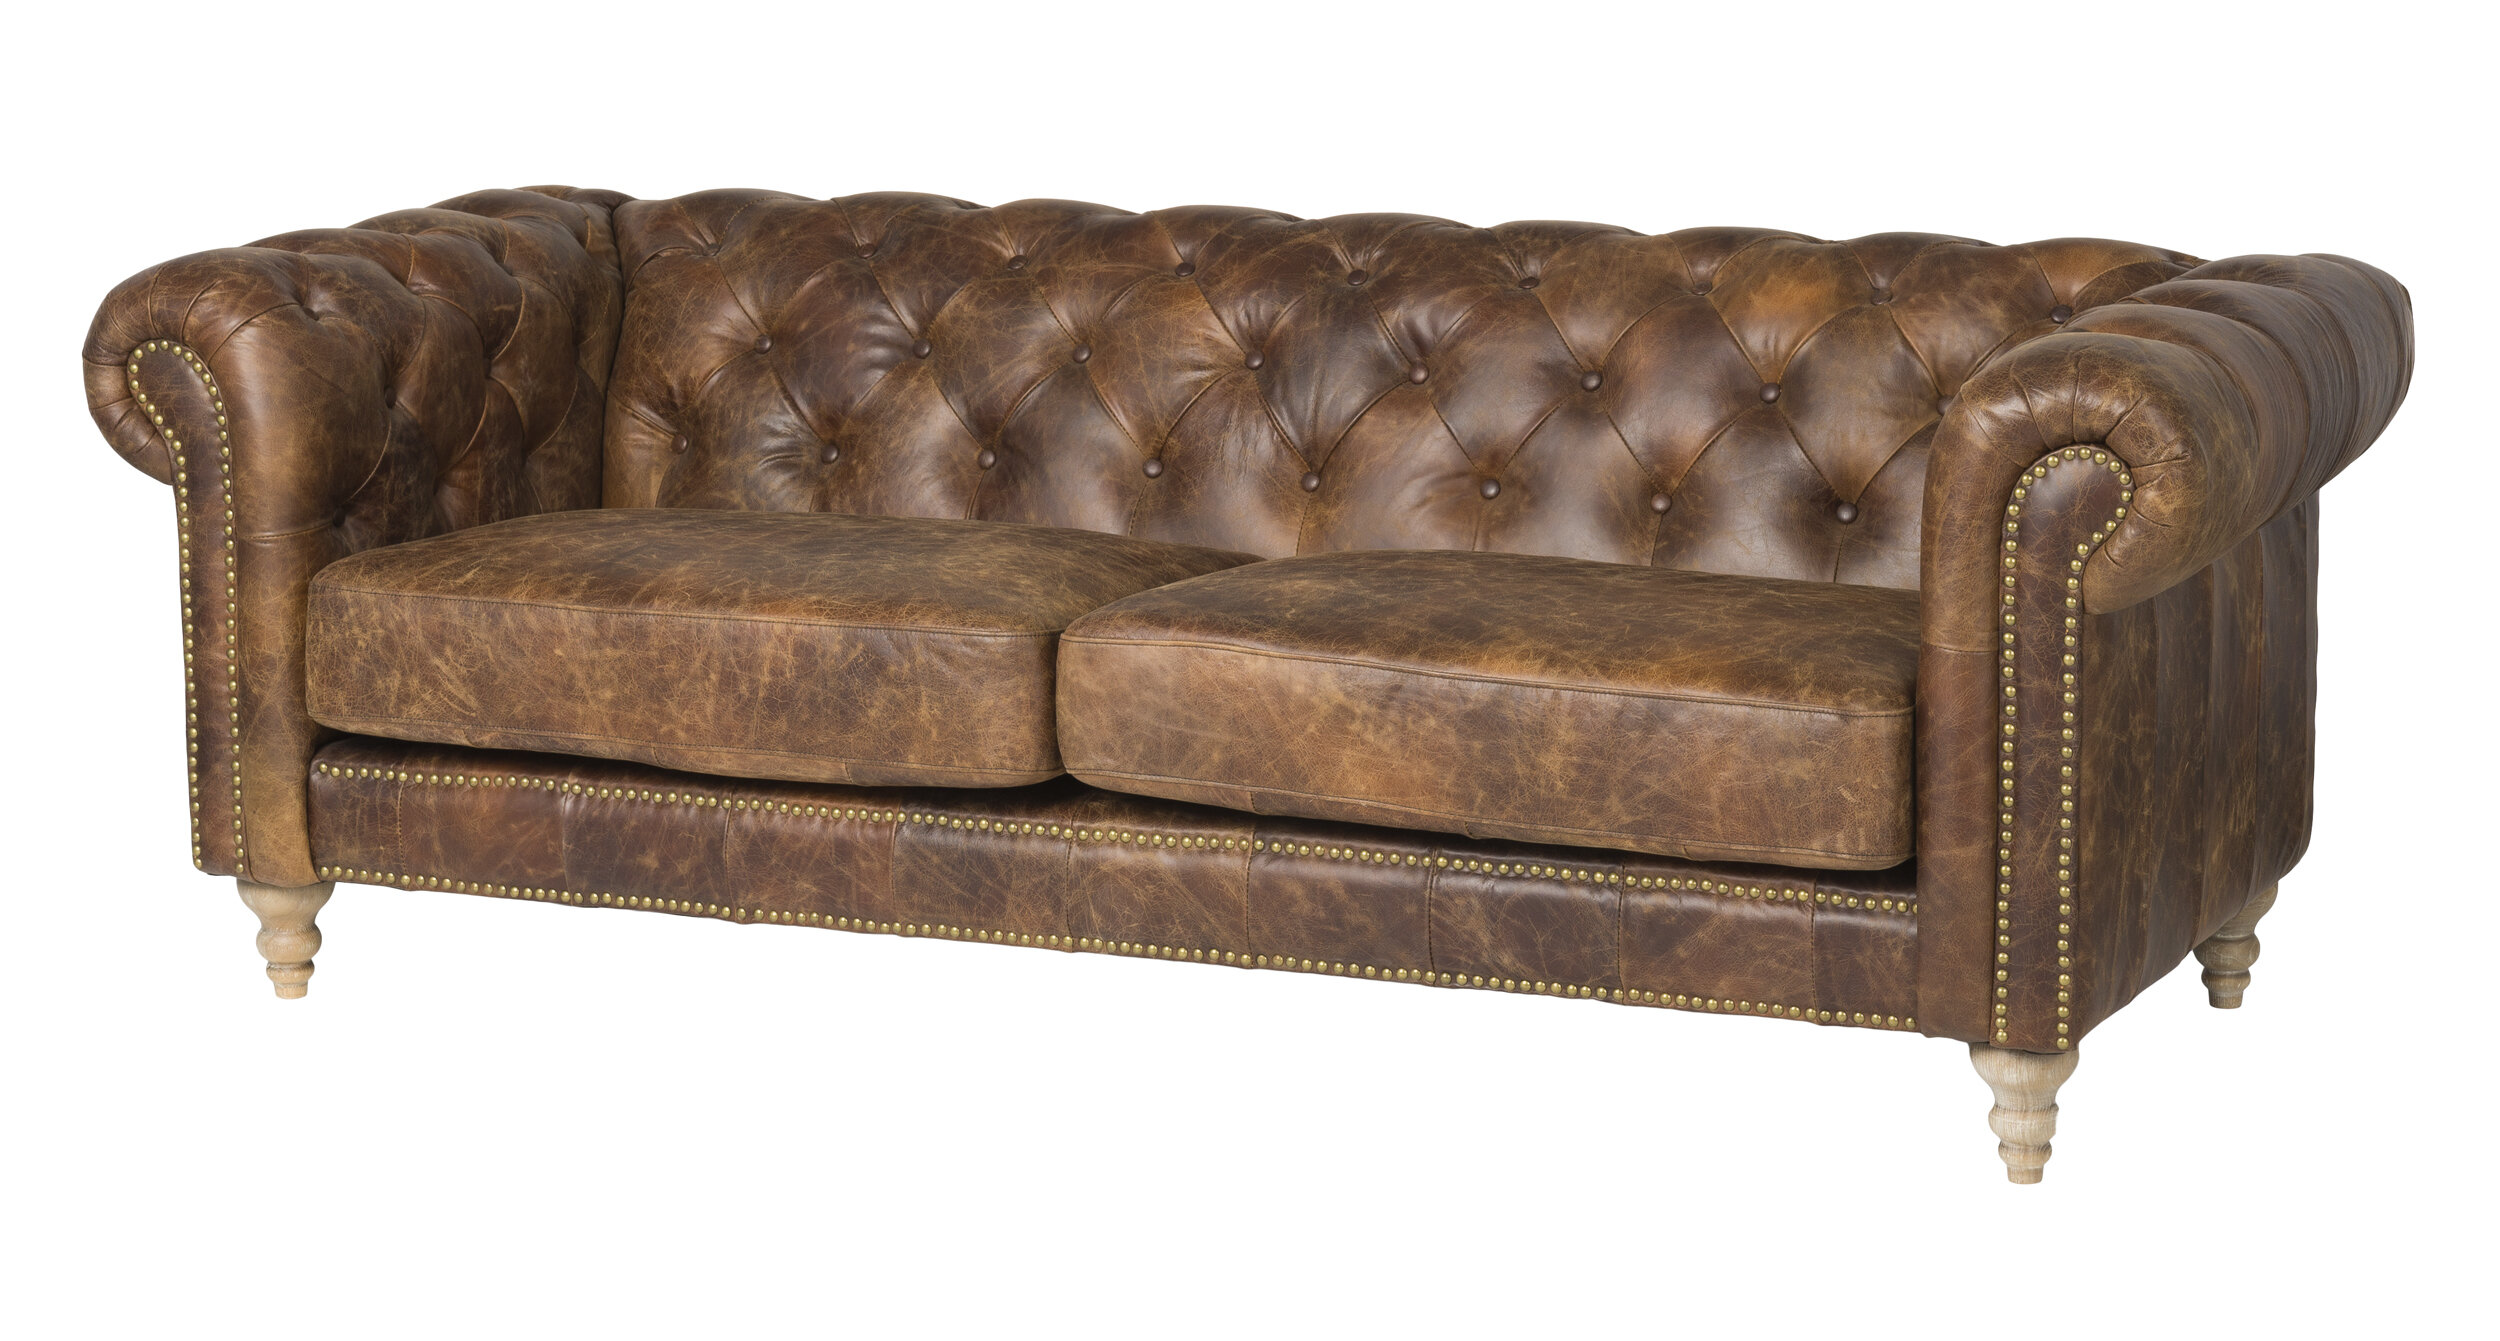 Wayfair Chesterfield Leather Sofas You Ll Love In 2021